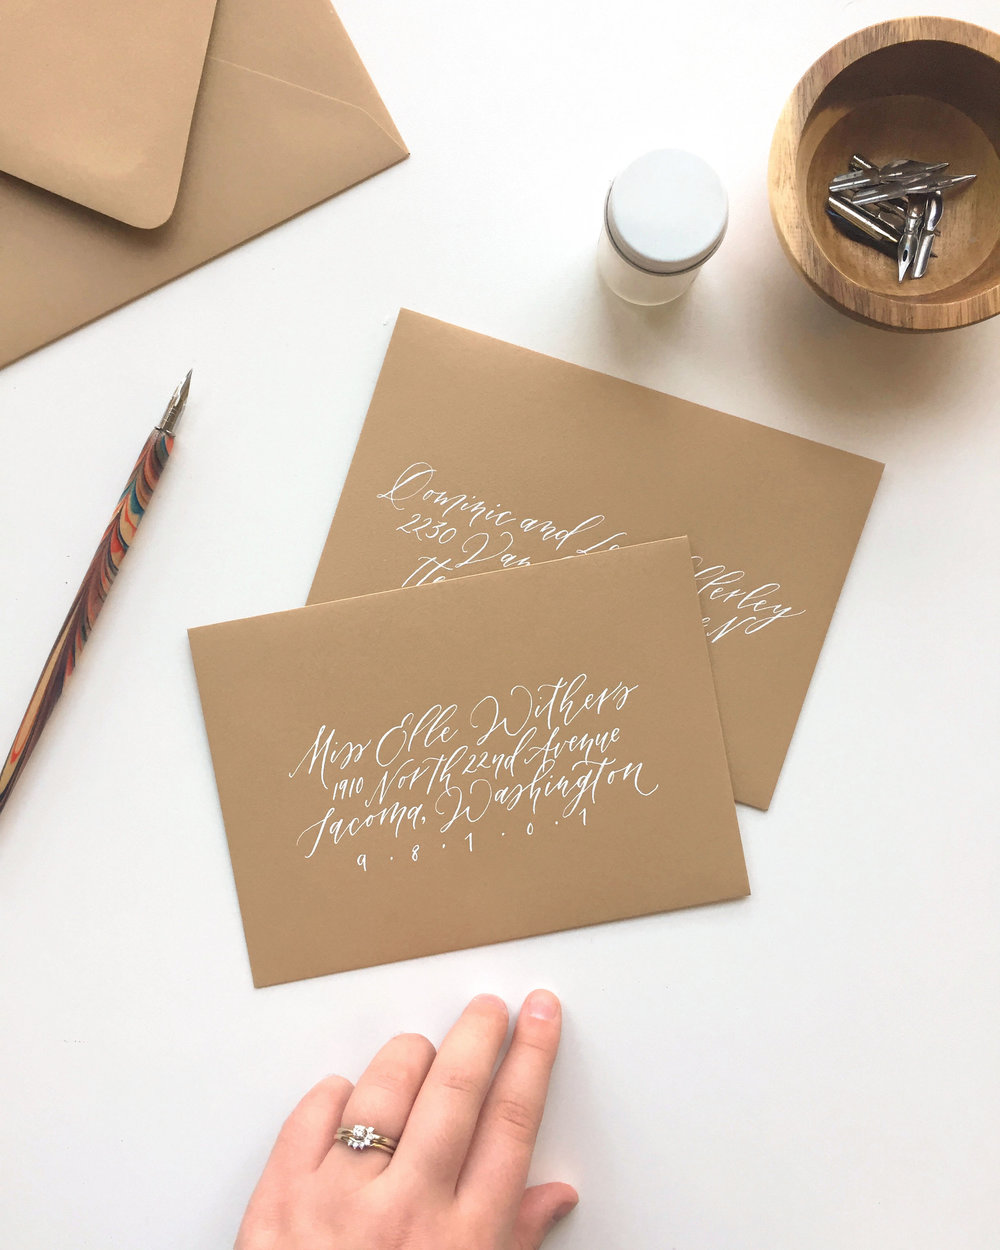 Calligraphy Addressing by Caitlin O'Bryant Design